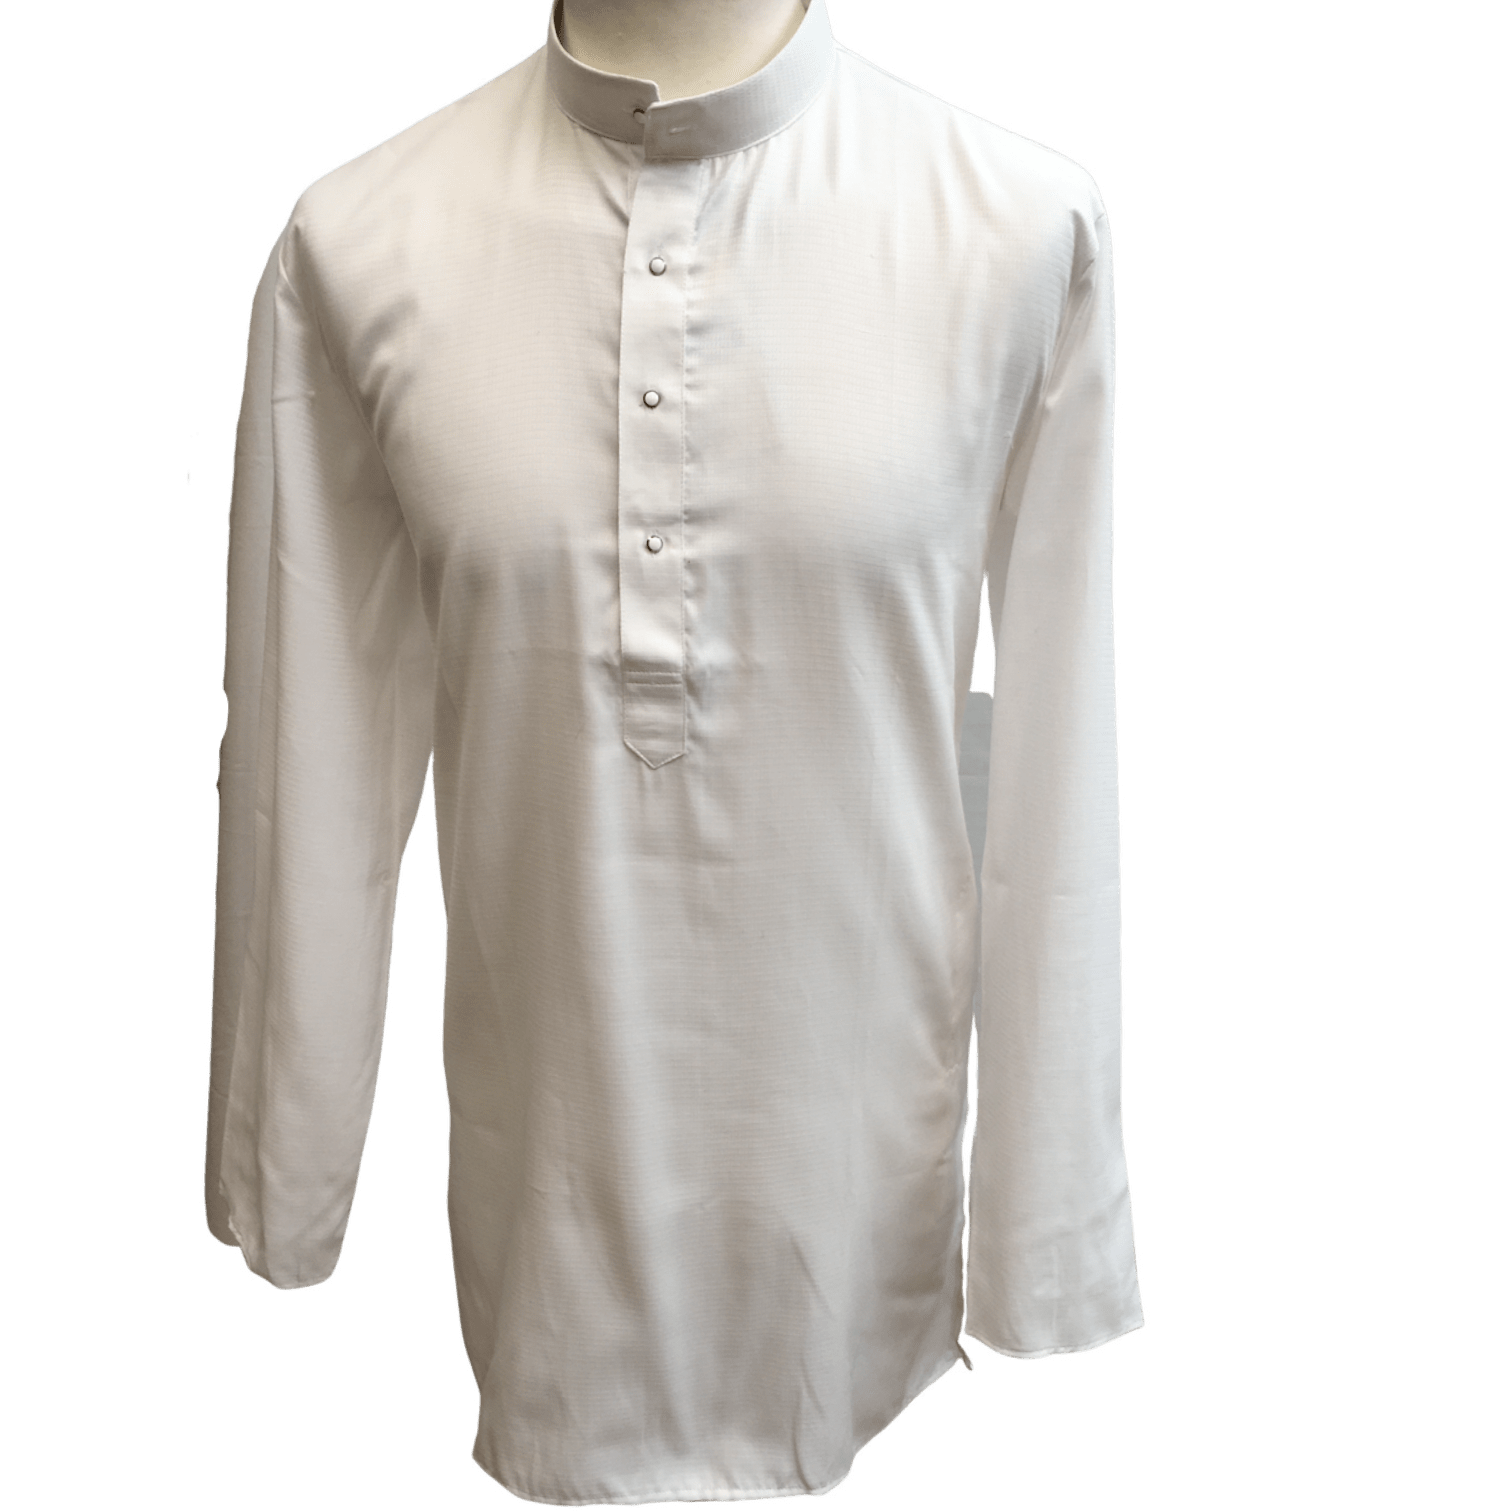 Mens Indian Dhoti Kurta Top in White, Thigh Length, for weddings, Bollywood Party  - Corsa13 Cp1219